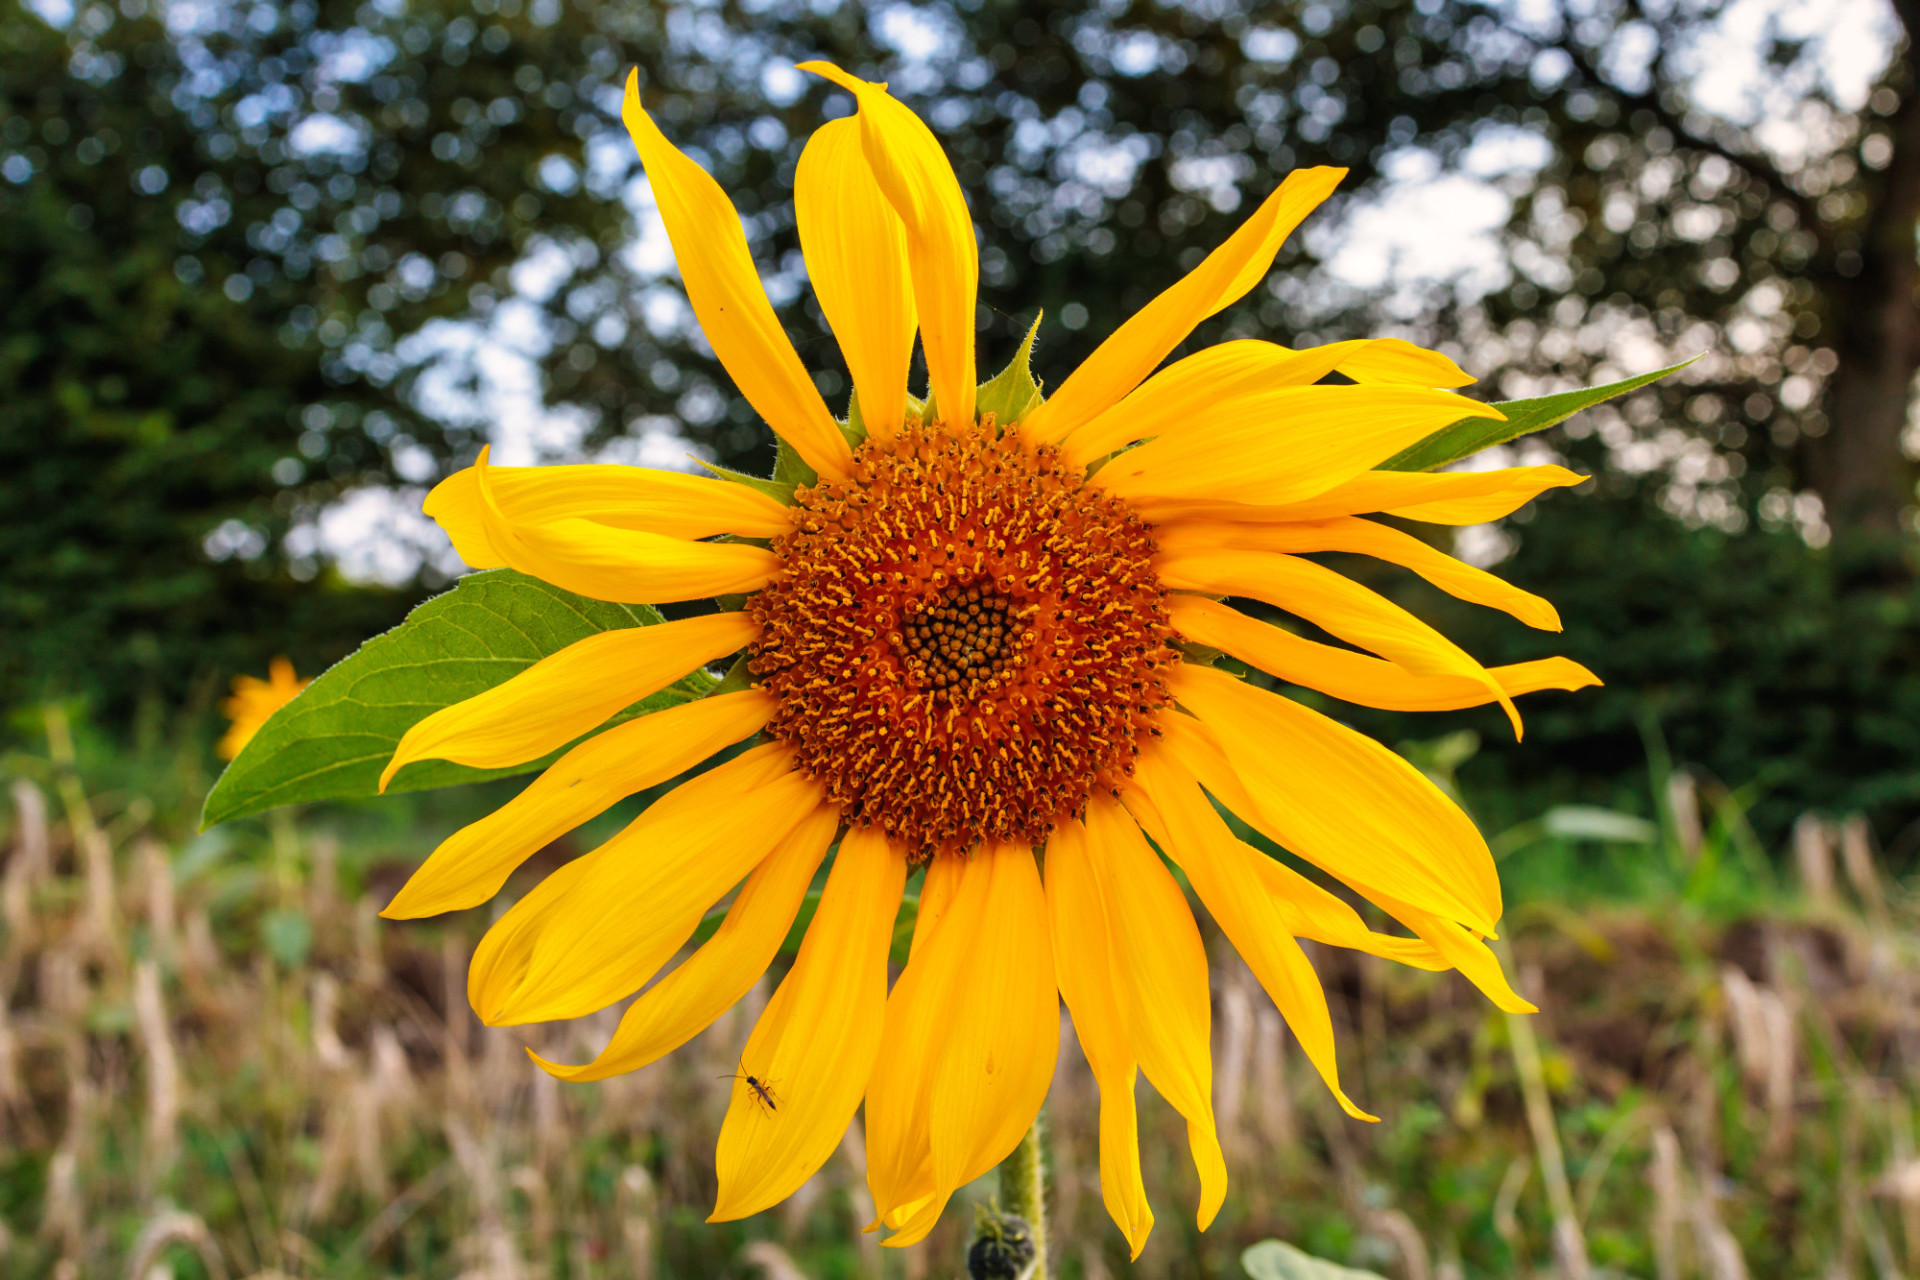 Wildly growing sunflower at the edge of a field